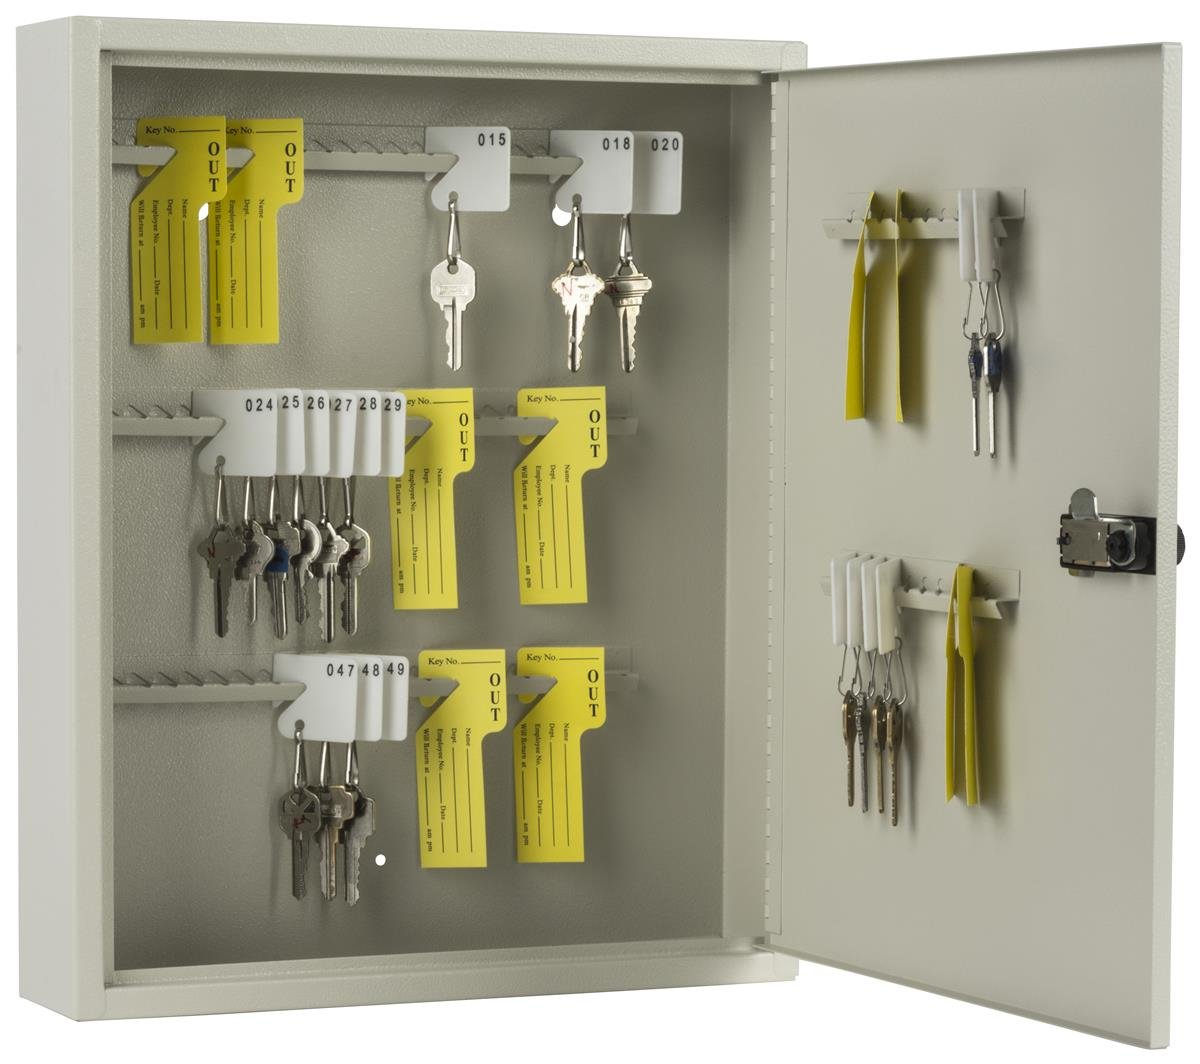 Displays2go Locking Key Cabinet with 80 Hooks, Manual Combination Lock, Wall Mount, Gray Steel (PWCBN80TN)